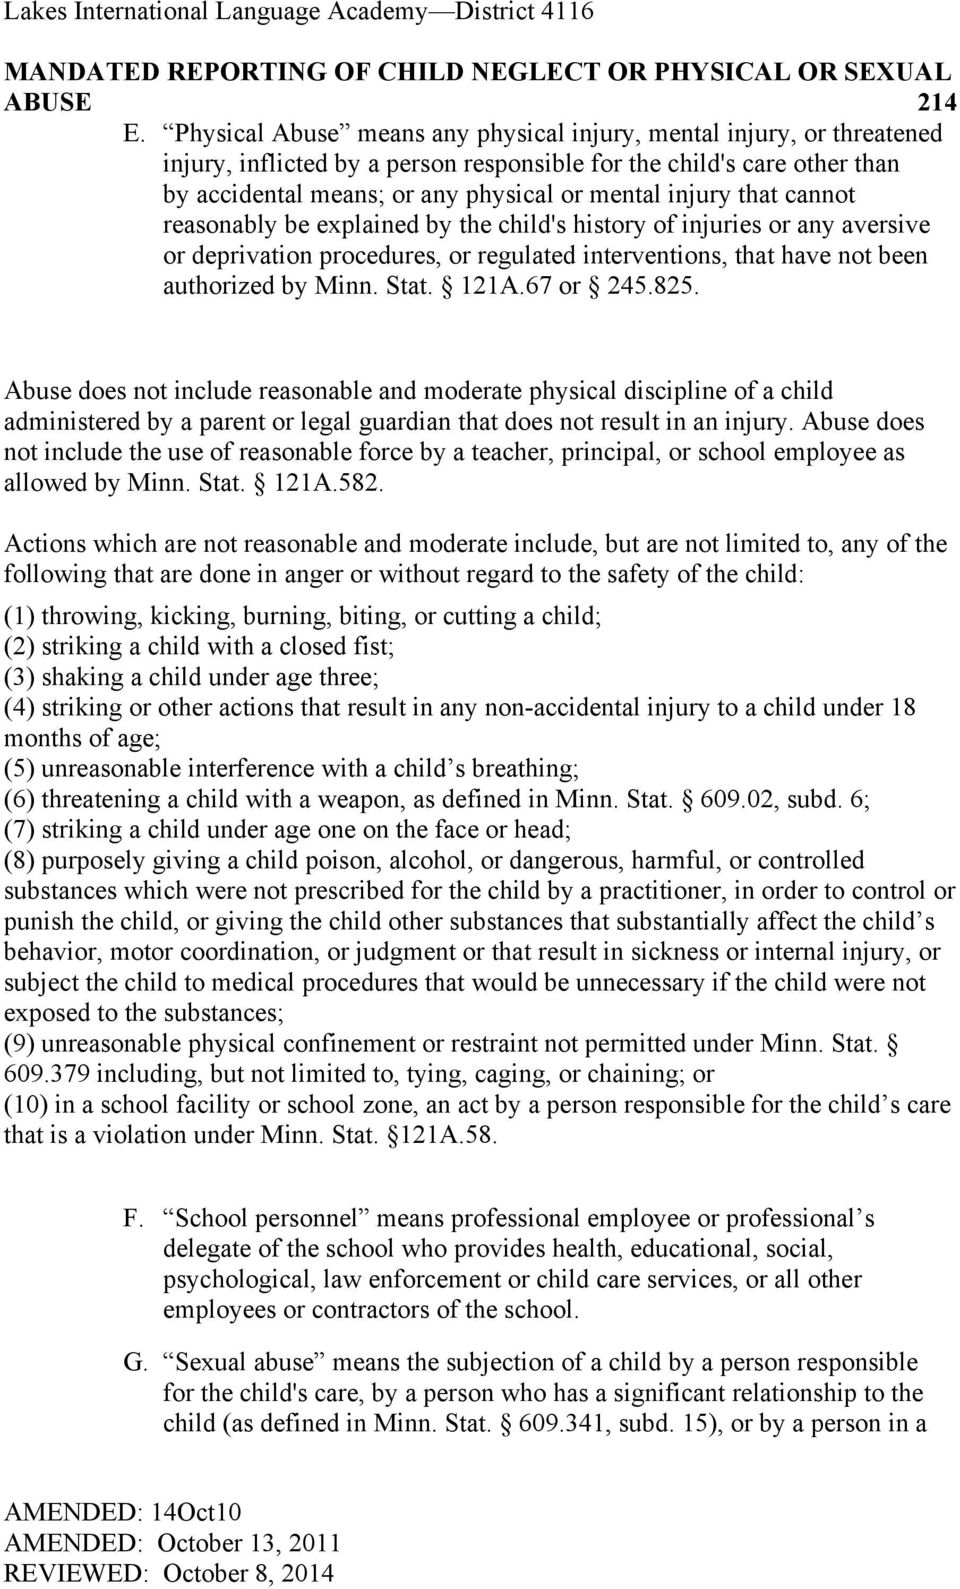 67 or 245.825. Abuse does not include reasonable and moderate physical discipline of a child administered by a parent or legal guardian that does not result in an injury.